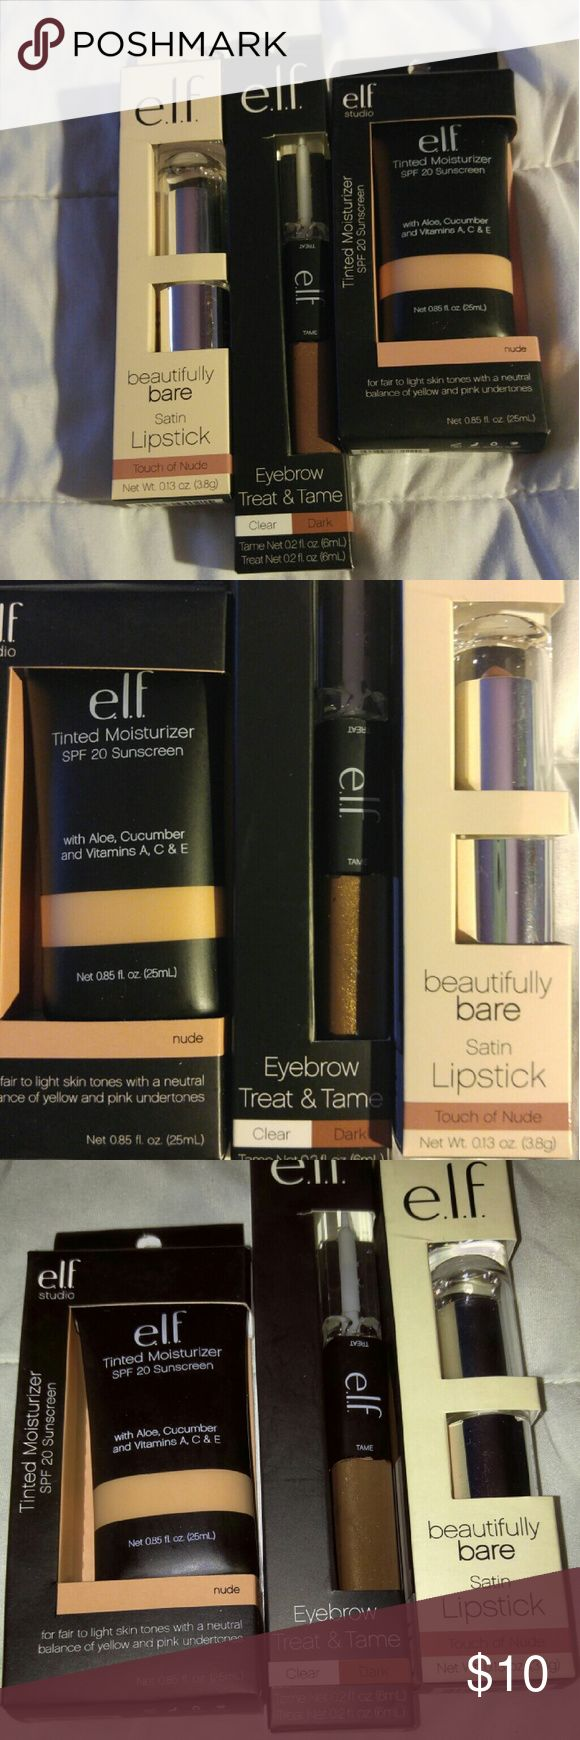 Elf beauty bundle Bundle of 3 elf products. Tinted moisturize in nude with spf 20 Elf eyebrow treat and tame in dark Elf beautifully bare satin lipstick in touch of nude. All but the lipstick has been swatched. Turns out they're not my color.   Use #bishoujo to sort for your size  Please note I do have several pets  #bundle #beautybundle #beauty #elf #elfbundle #elfcosmetics #elfbeautybundle #moisurizer #lipstick #eyebrow #moisturize #tintedmoisturizer #bundles ELF Makeup